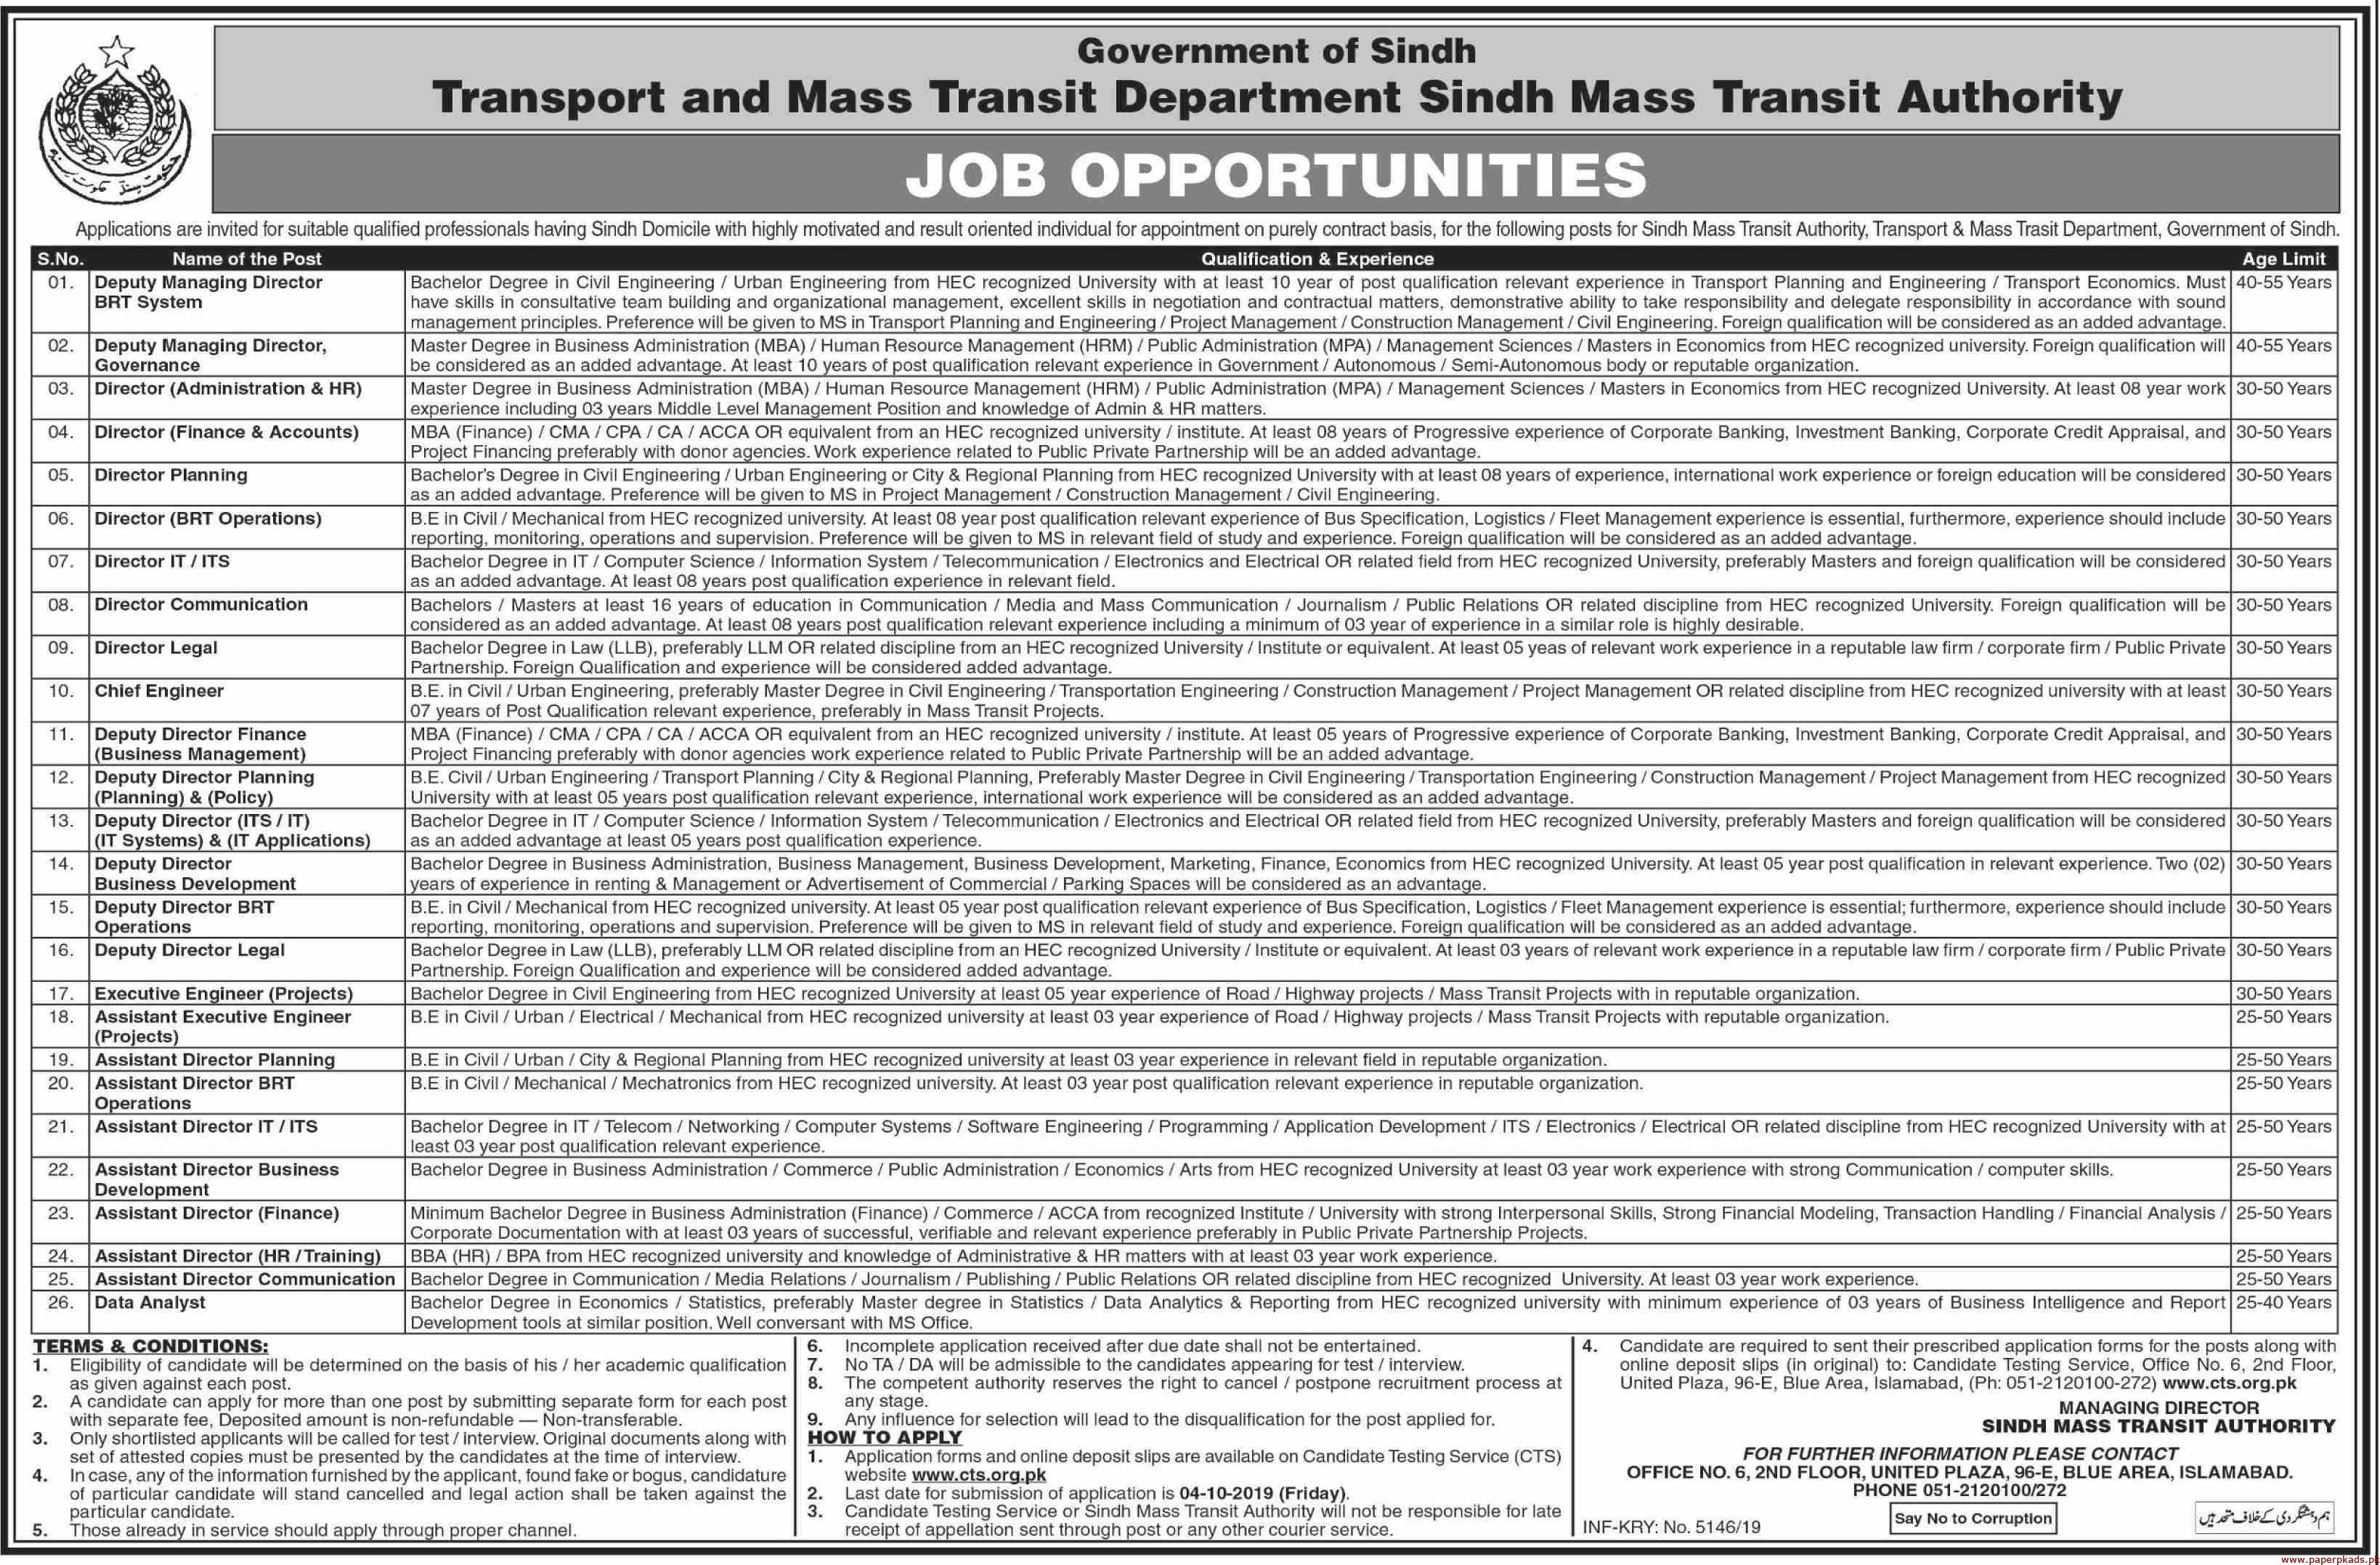 Government of Sindh Transport and Mass Transit Department Jobs 2019 Latest